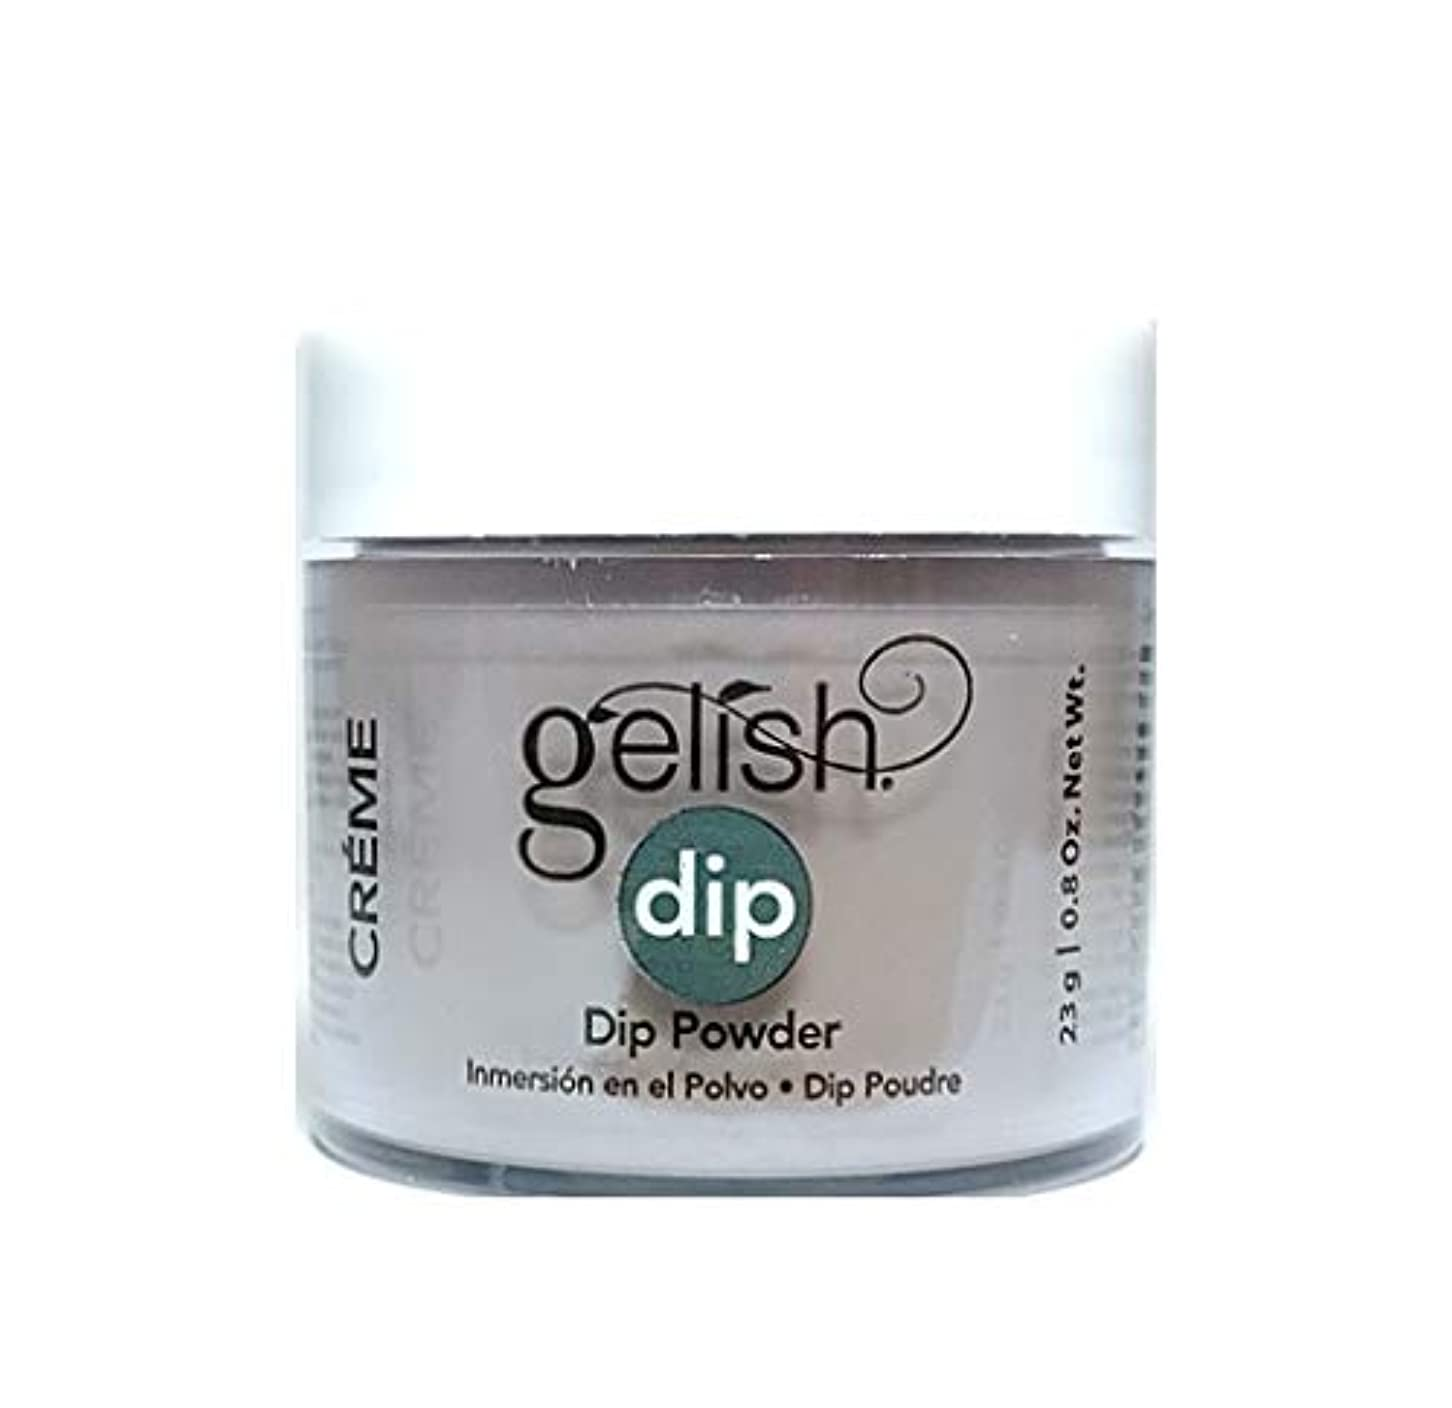 Harmony Gelish - Dip Powder - Lust At First Sight - 23g / 0.8oz